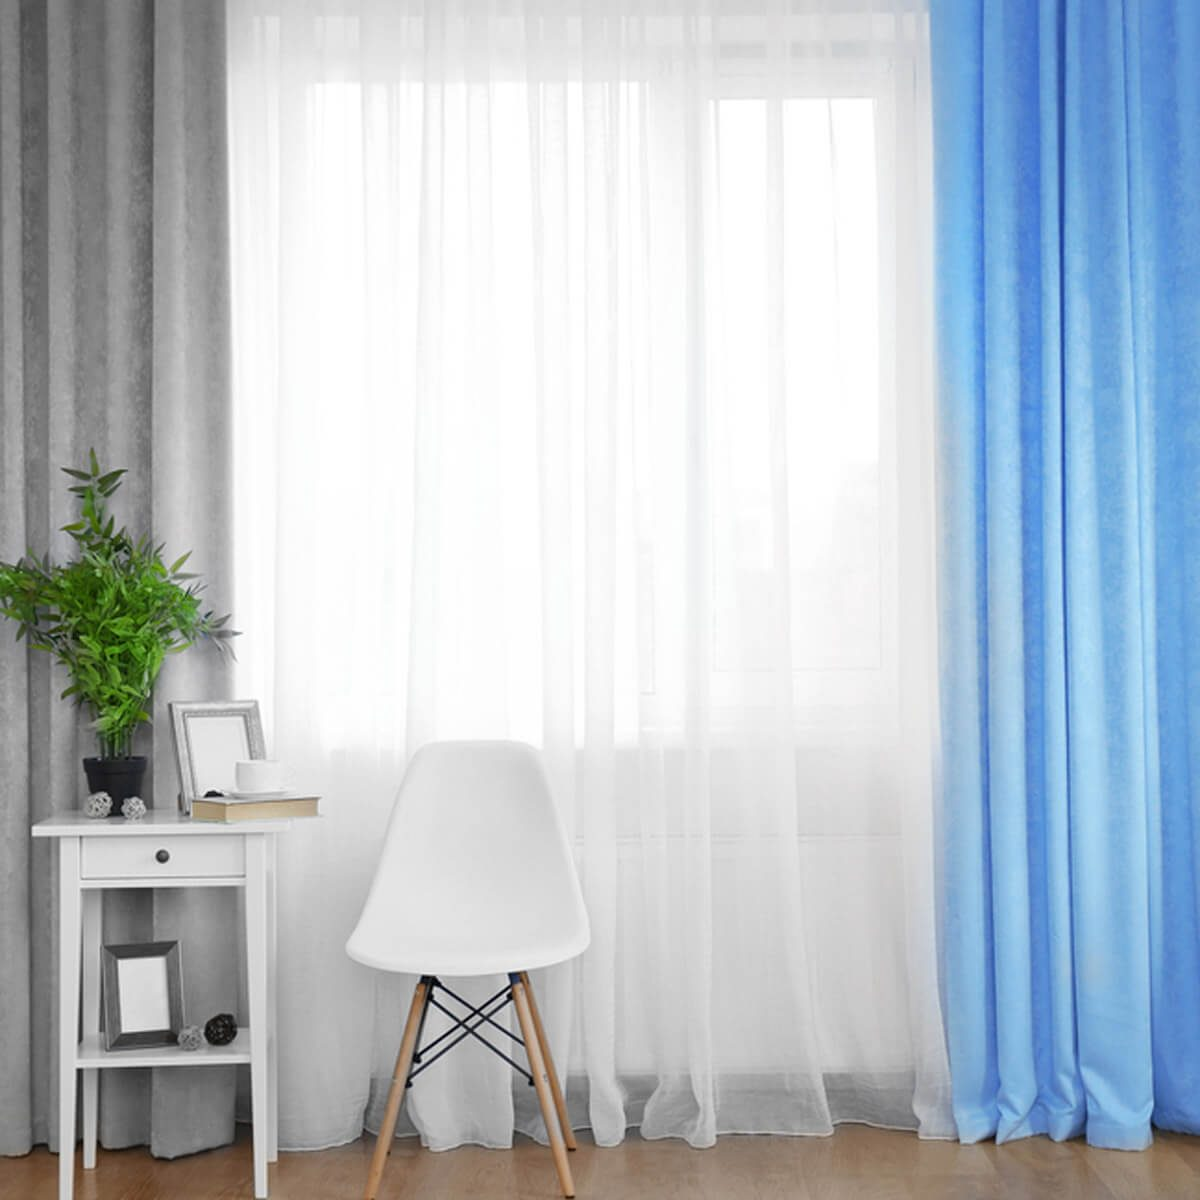 shutterstock_376836547 tips for cleaning curtains